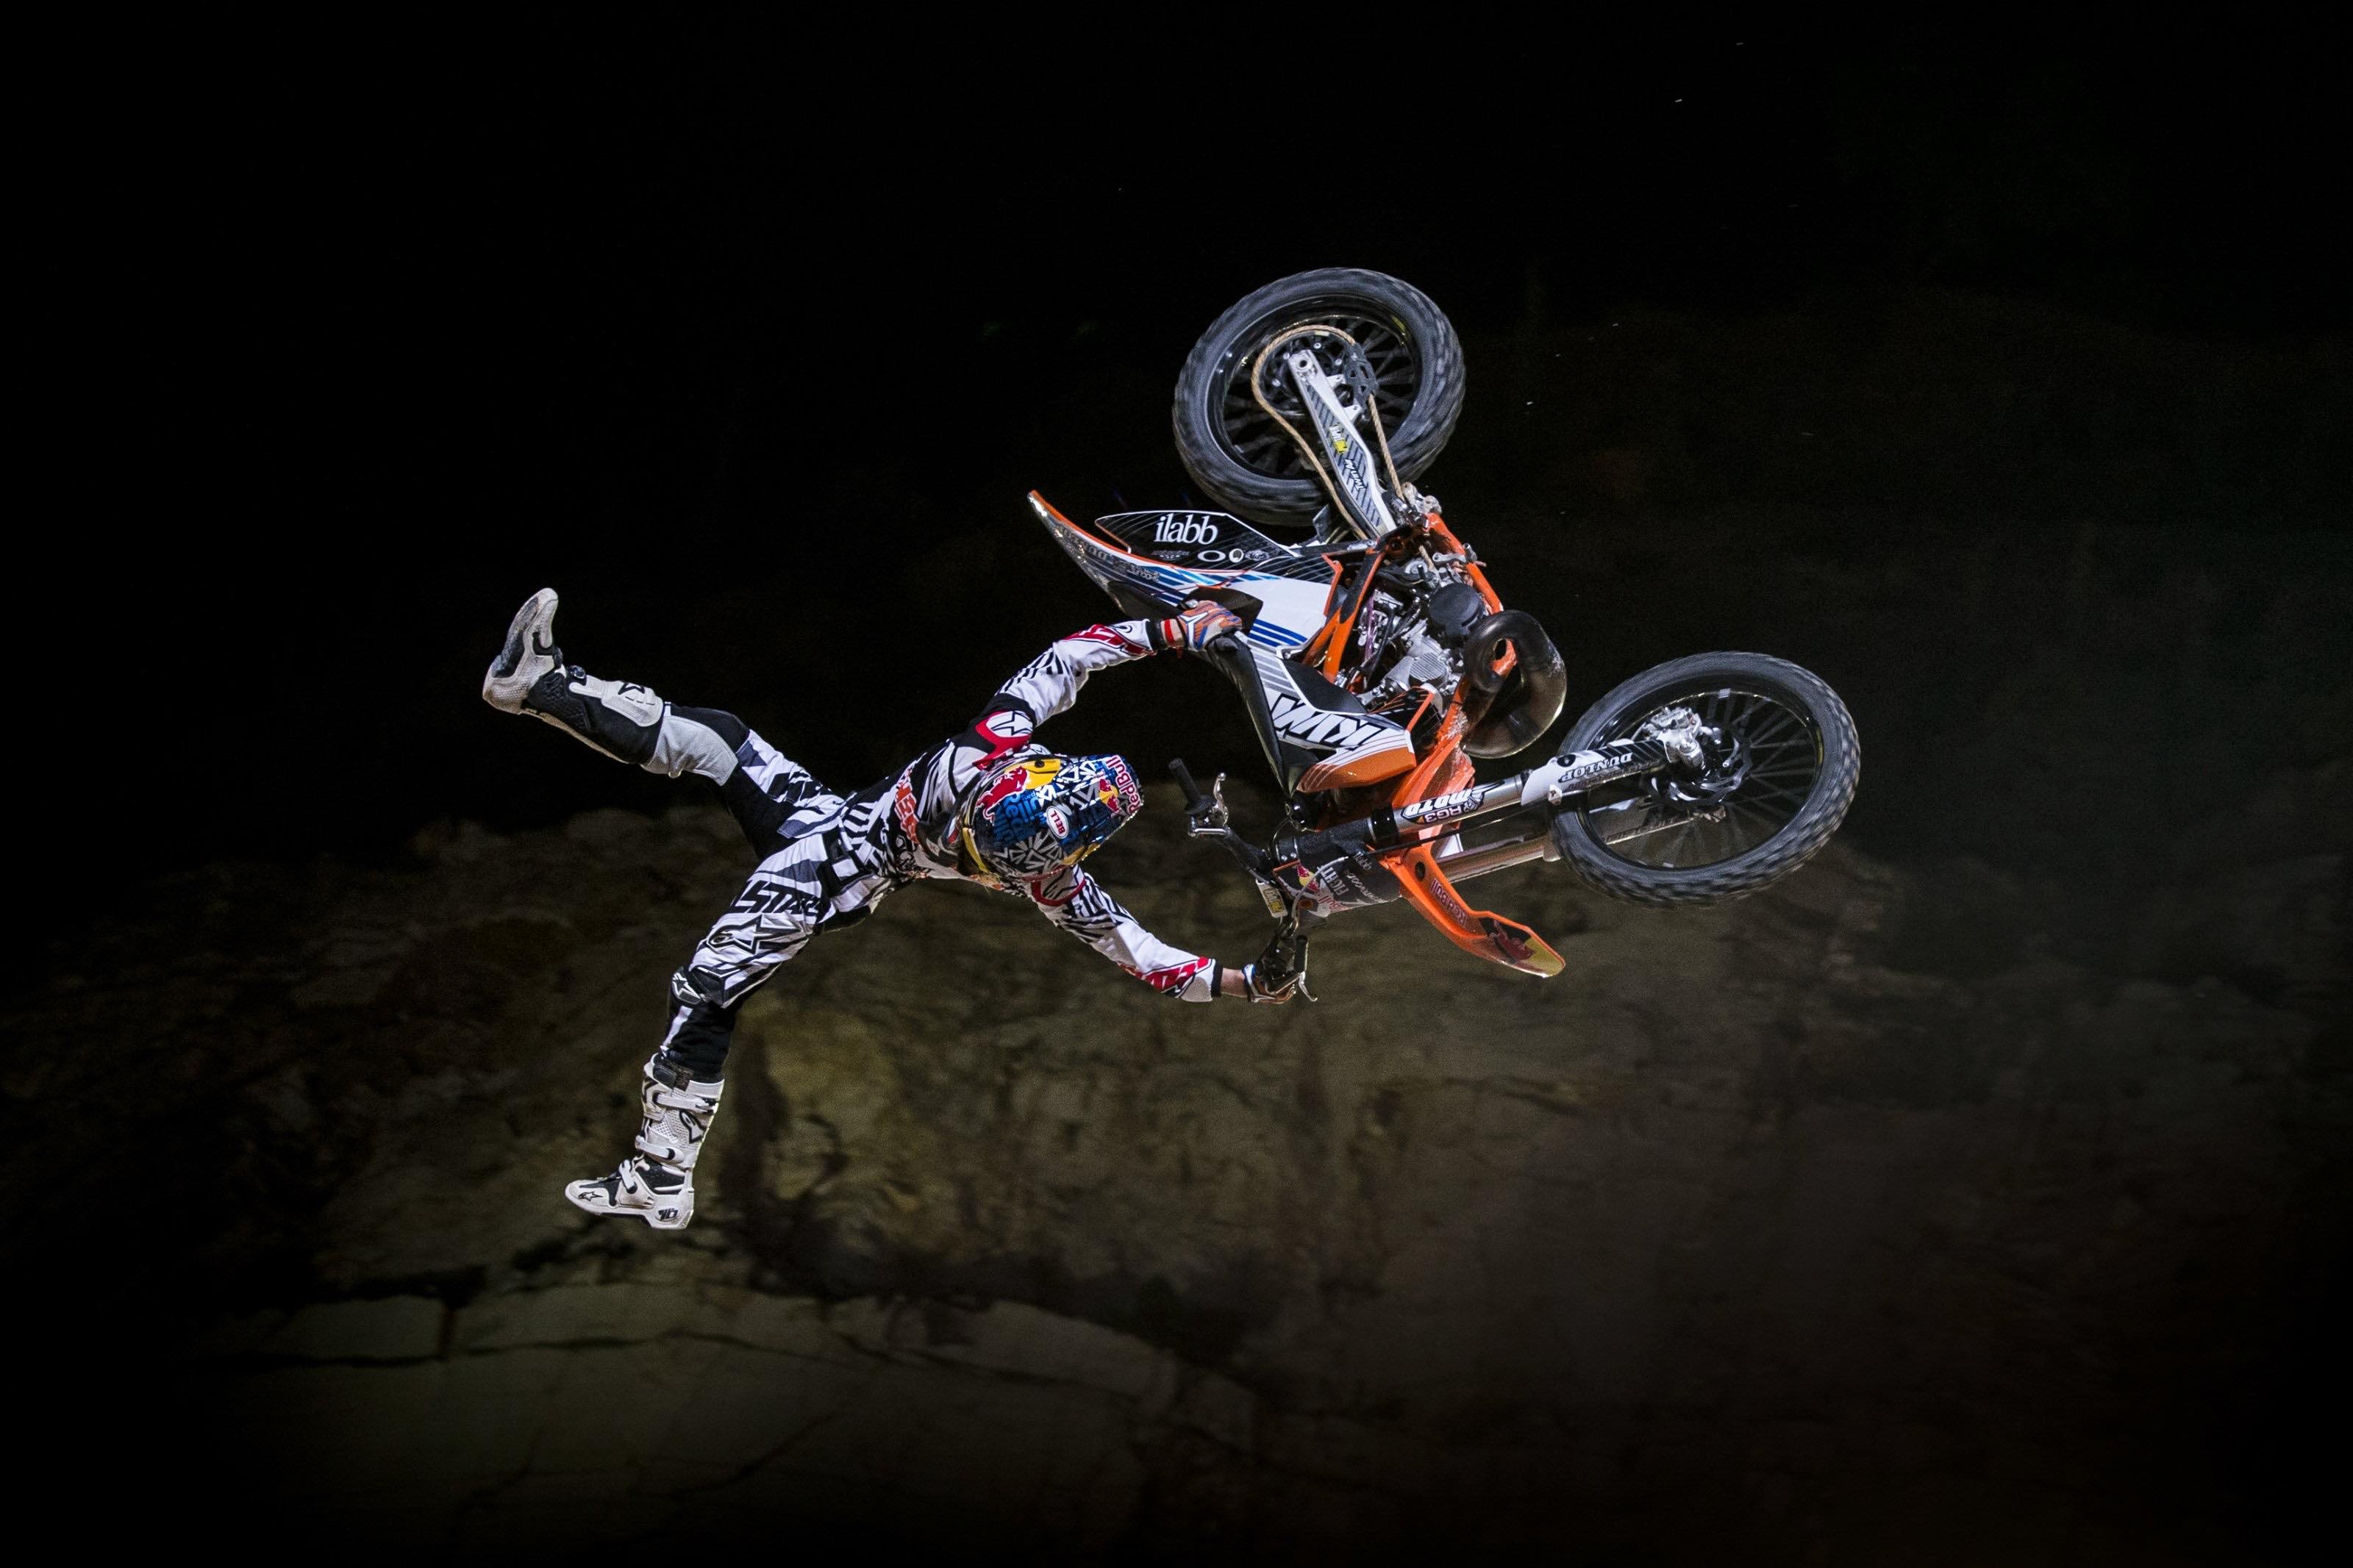 red bull x fighters athens qualification results fmx lw mag. Black Bedroom Furniture Sets. Home Design Ideas